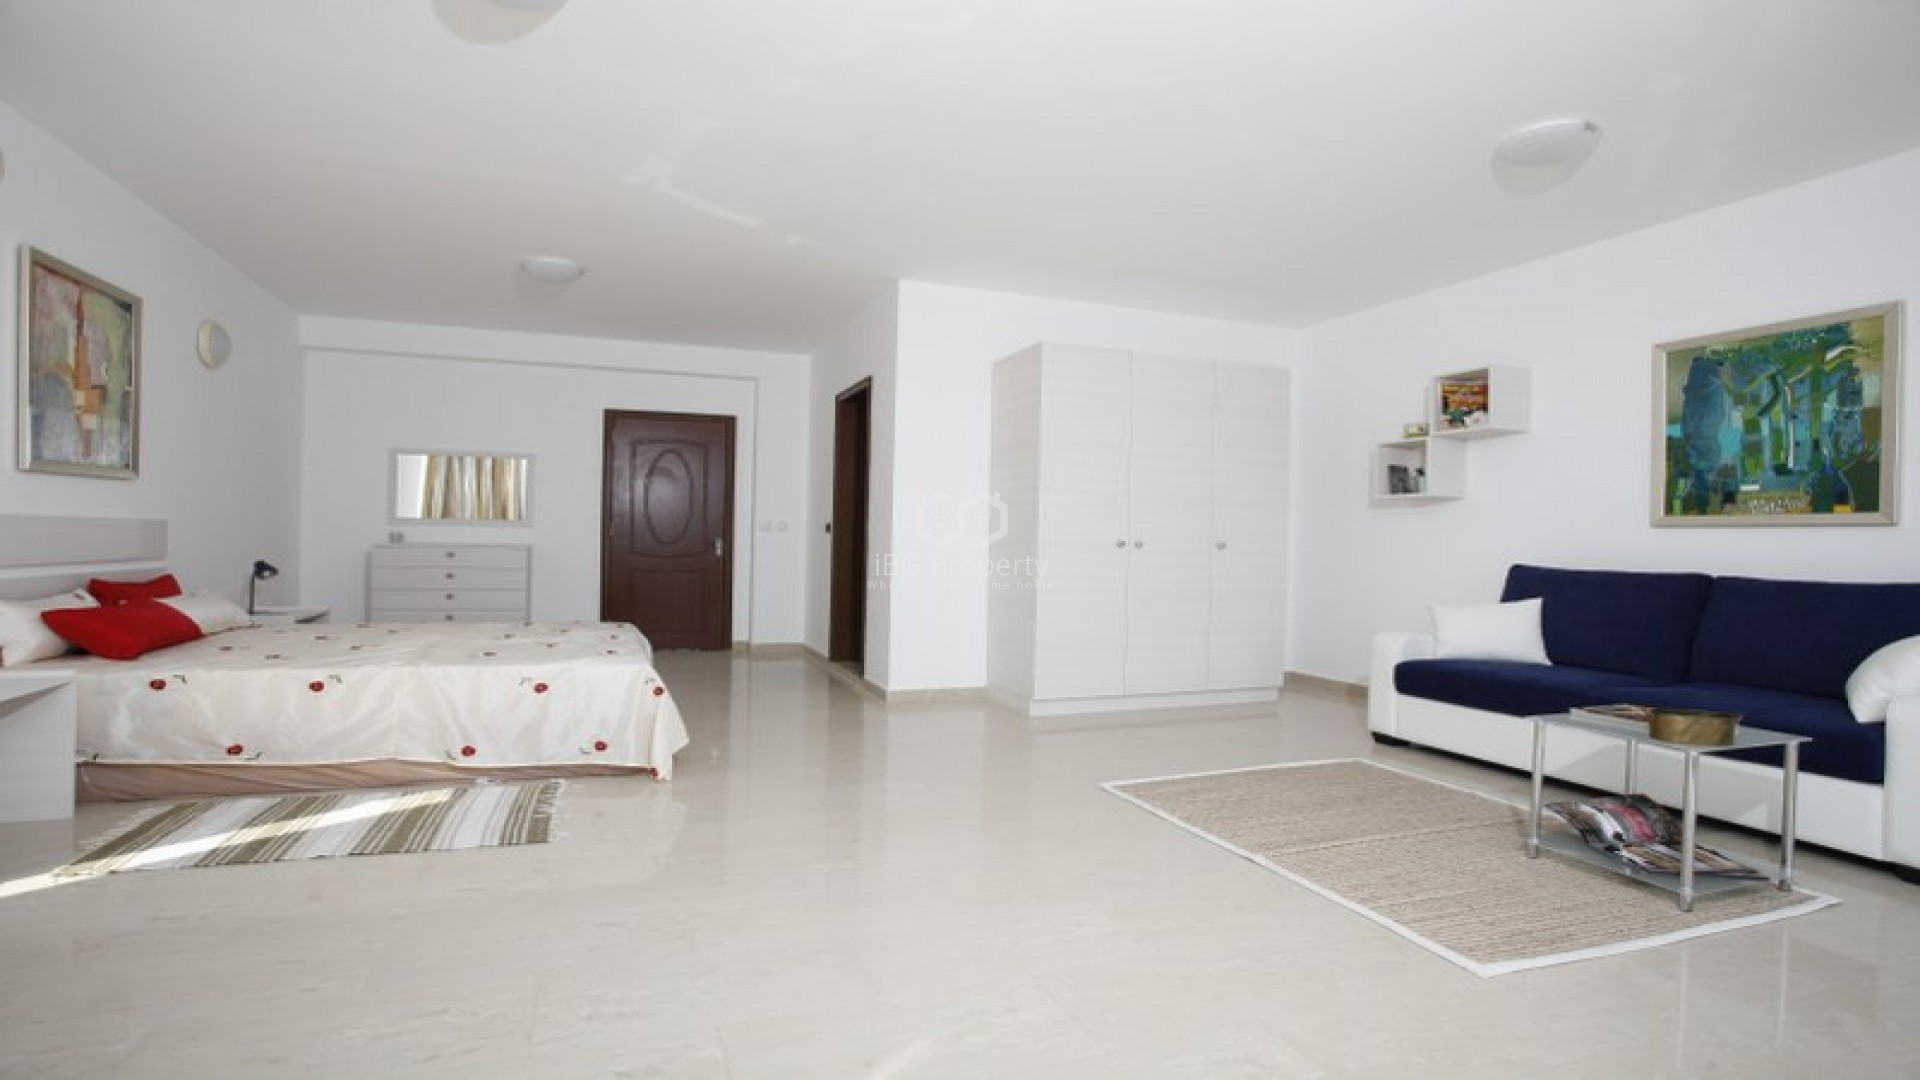 EXCLUSIVE OFFER! One bedroom apartment Byala 77 m2